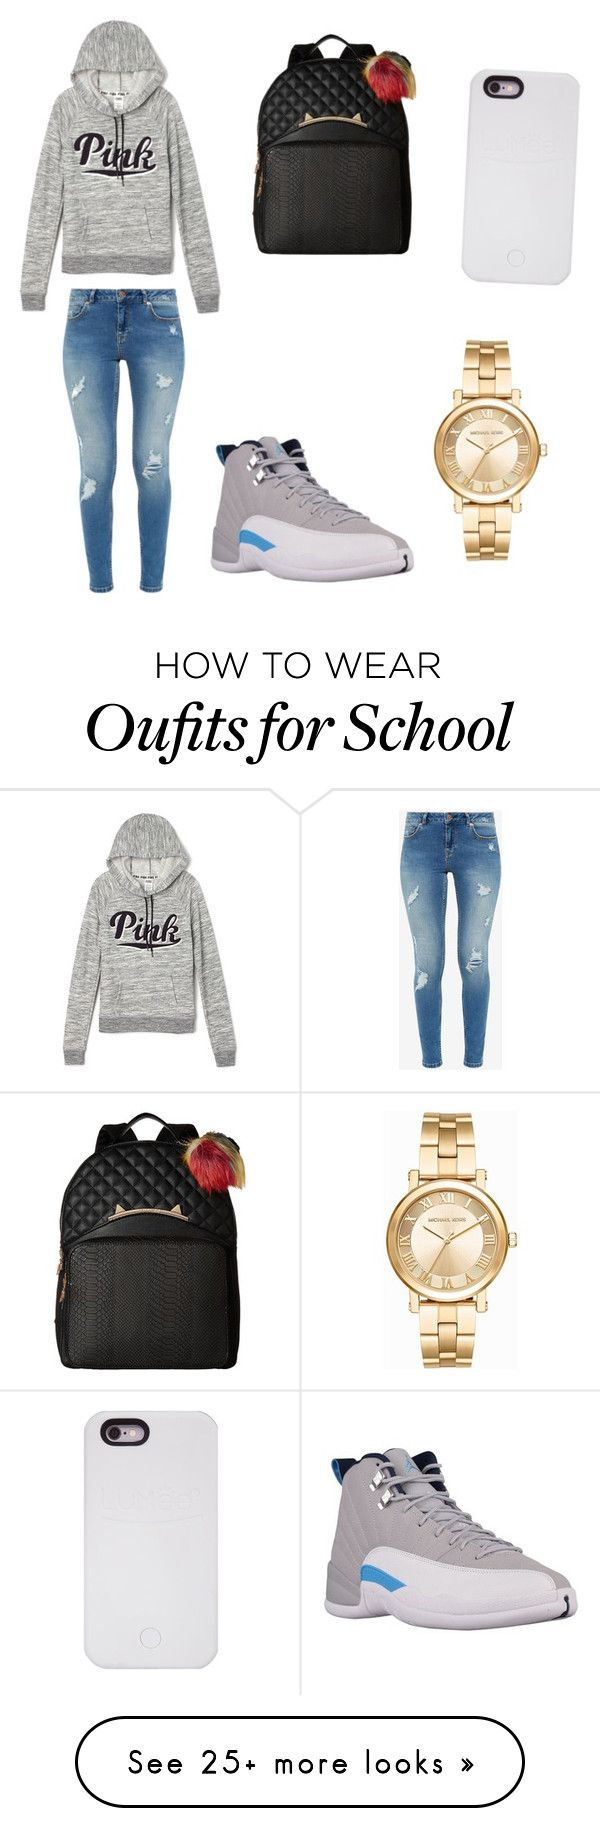 """School days ."" by sidneeeeyyyy on Polyvore featuring Victoria's Secret, Ted Baker, Betsey Johnson, LuMee and Michael Kors"